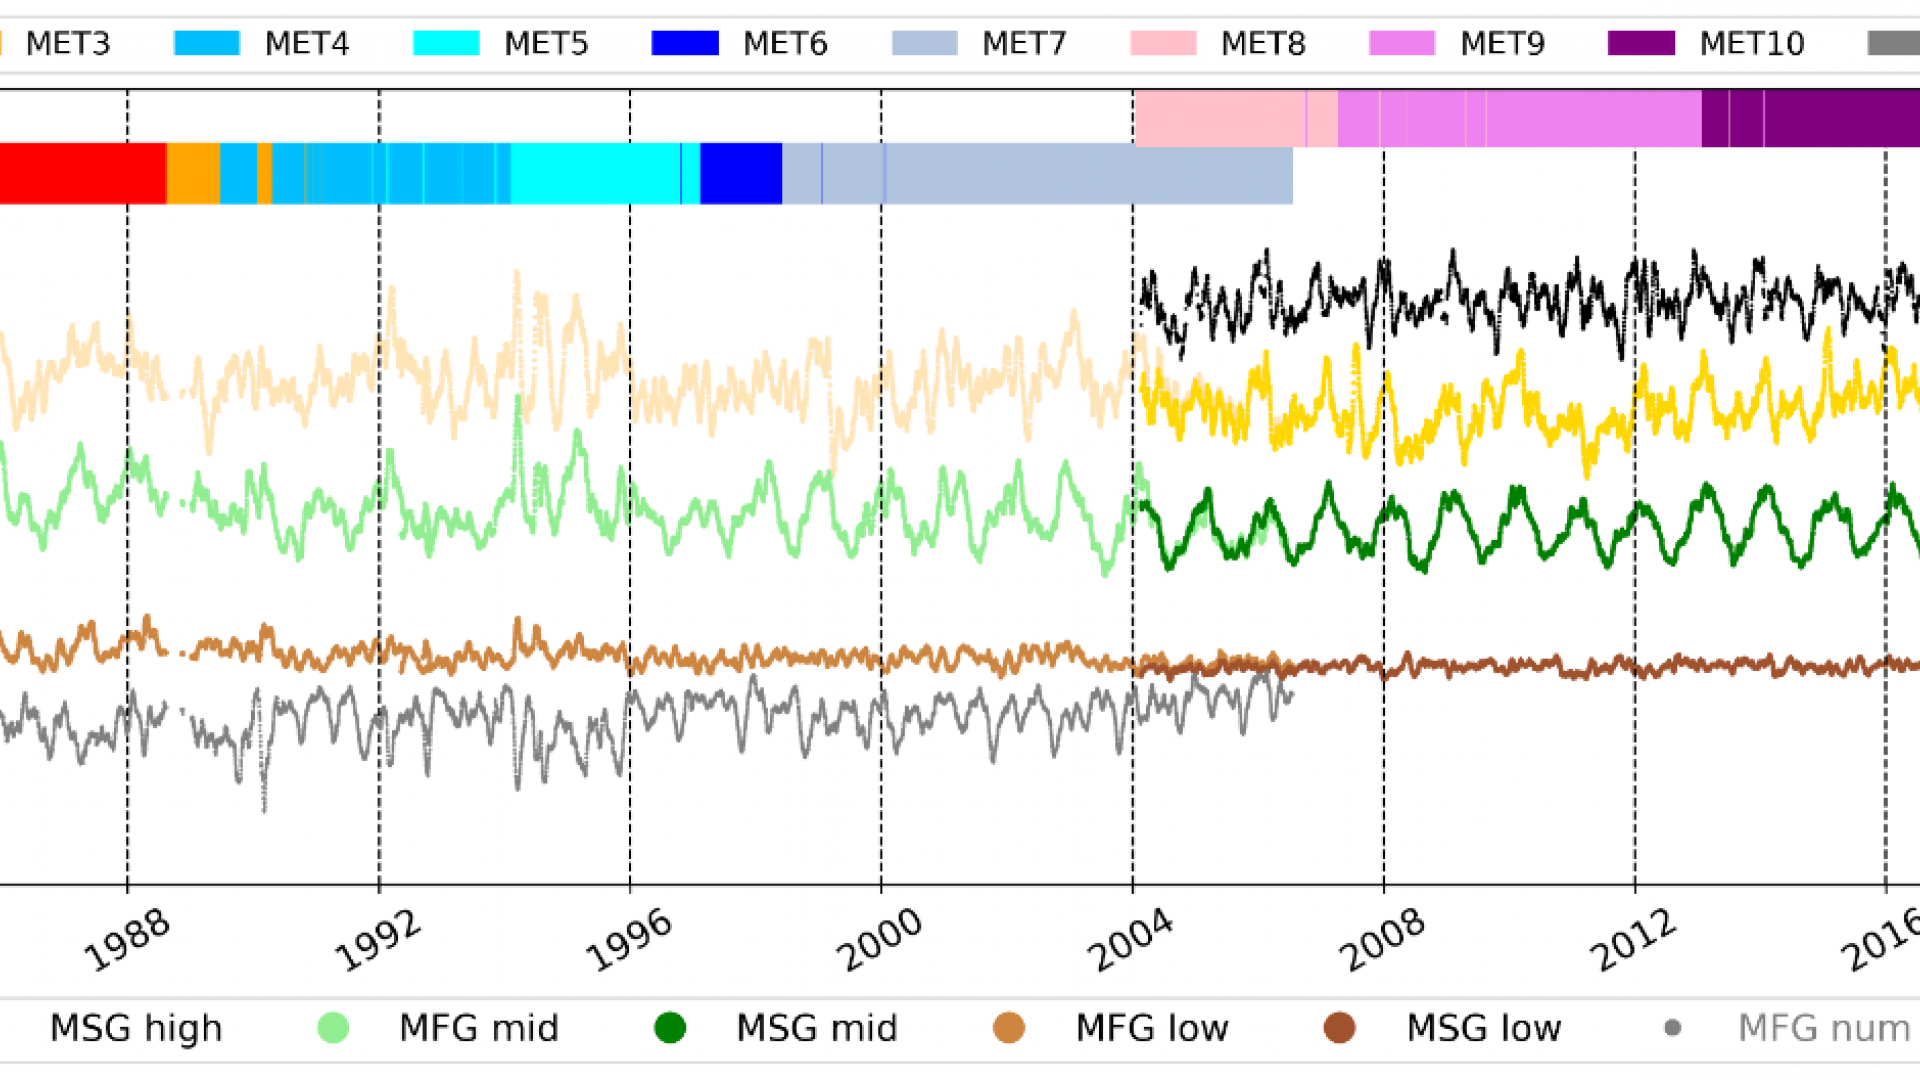 Meteosat AMV Thematic Climate Data Record time series